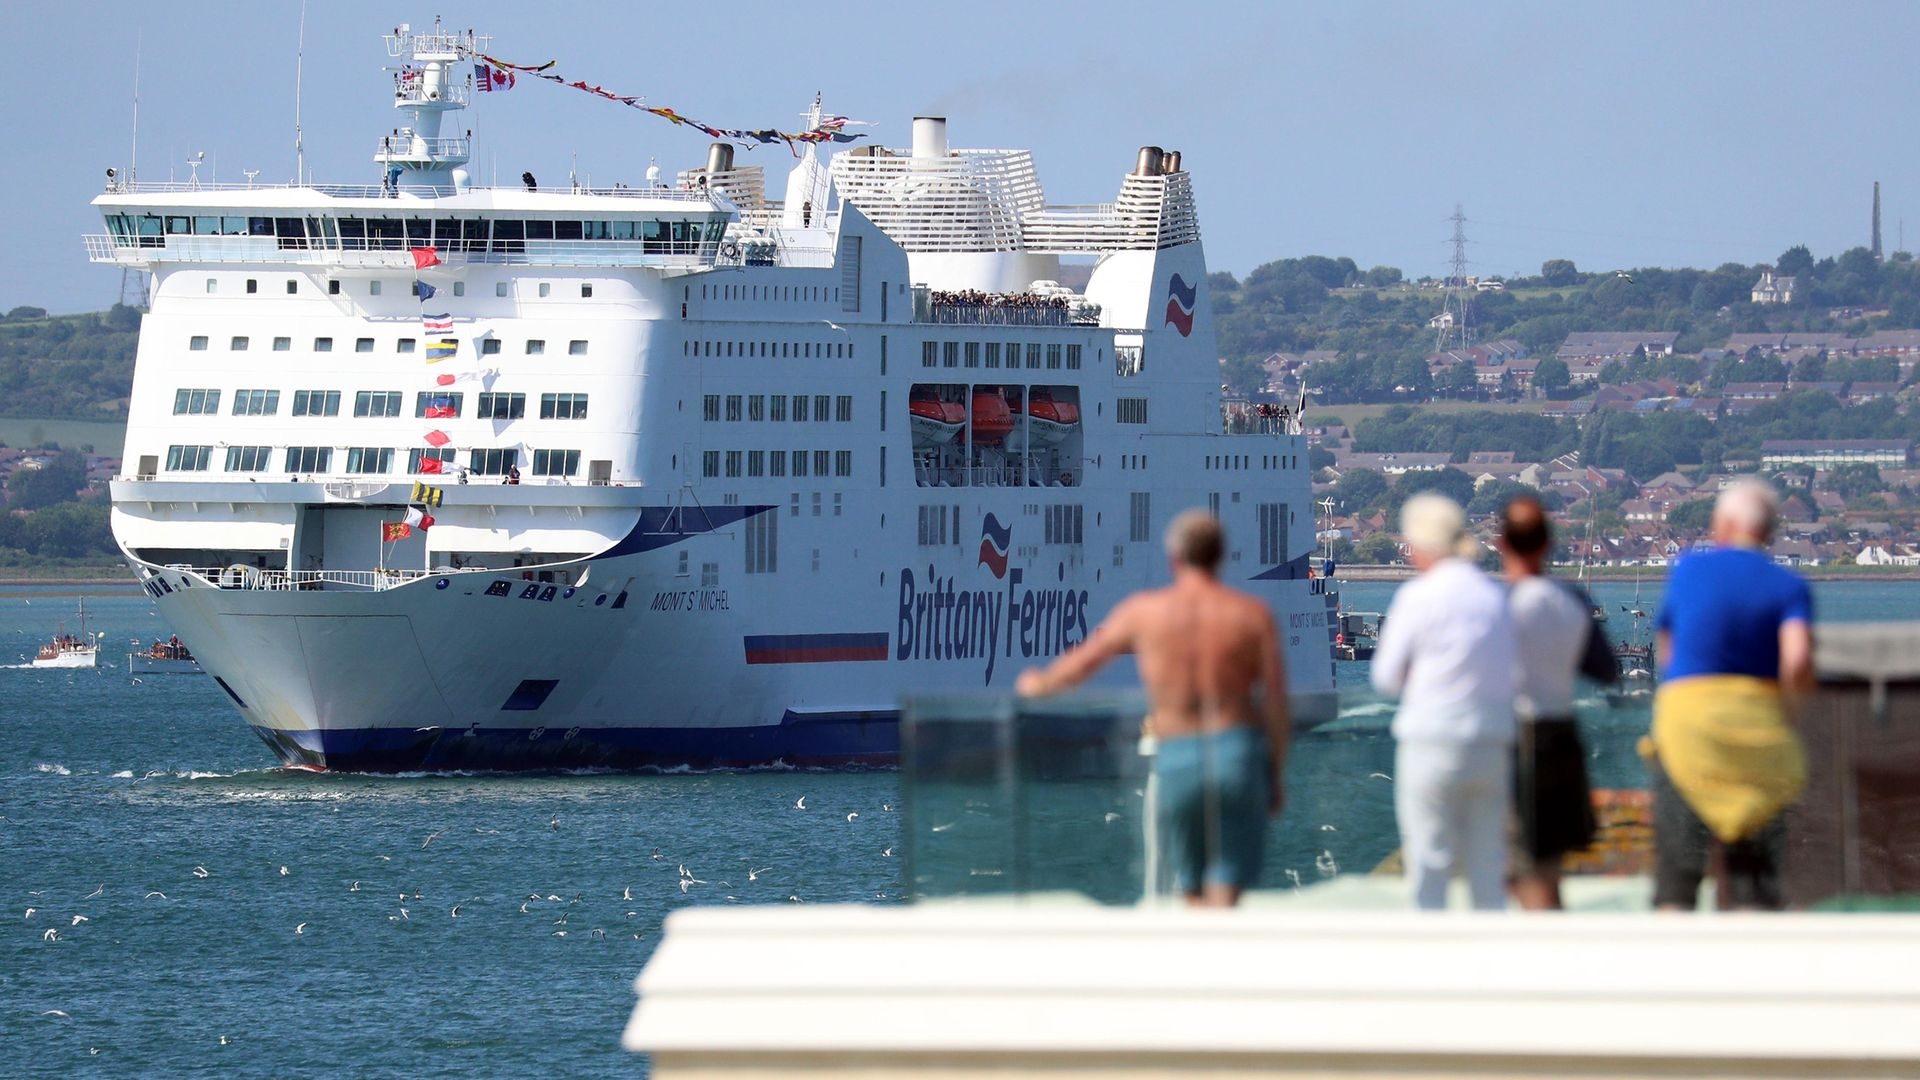 Brittany Ferries' MV Mont Saint Michel leaves Portsmouth harbour escorted by a flotilla of ships from the Royal Navy and Dunkirk small boats association, as it takes D-Day veterans to France, organised by the charity D-Day Revisited. - Credit: PA